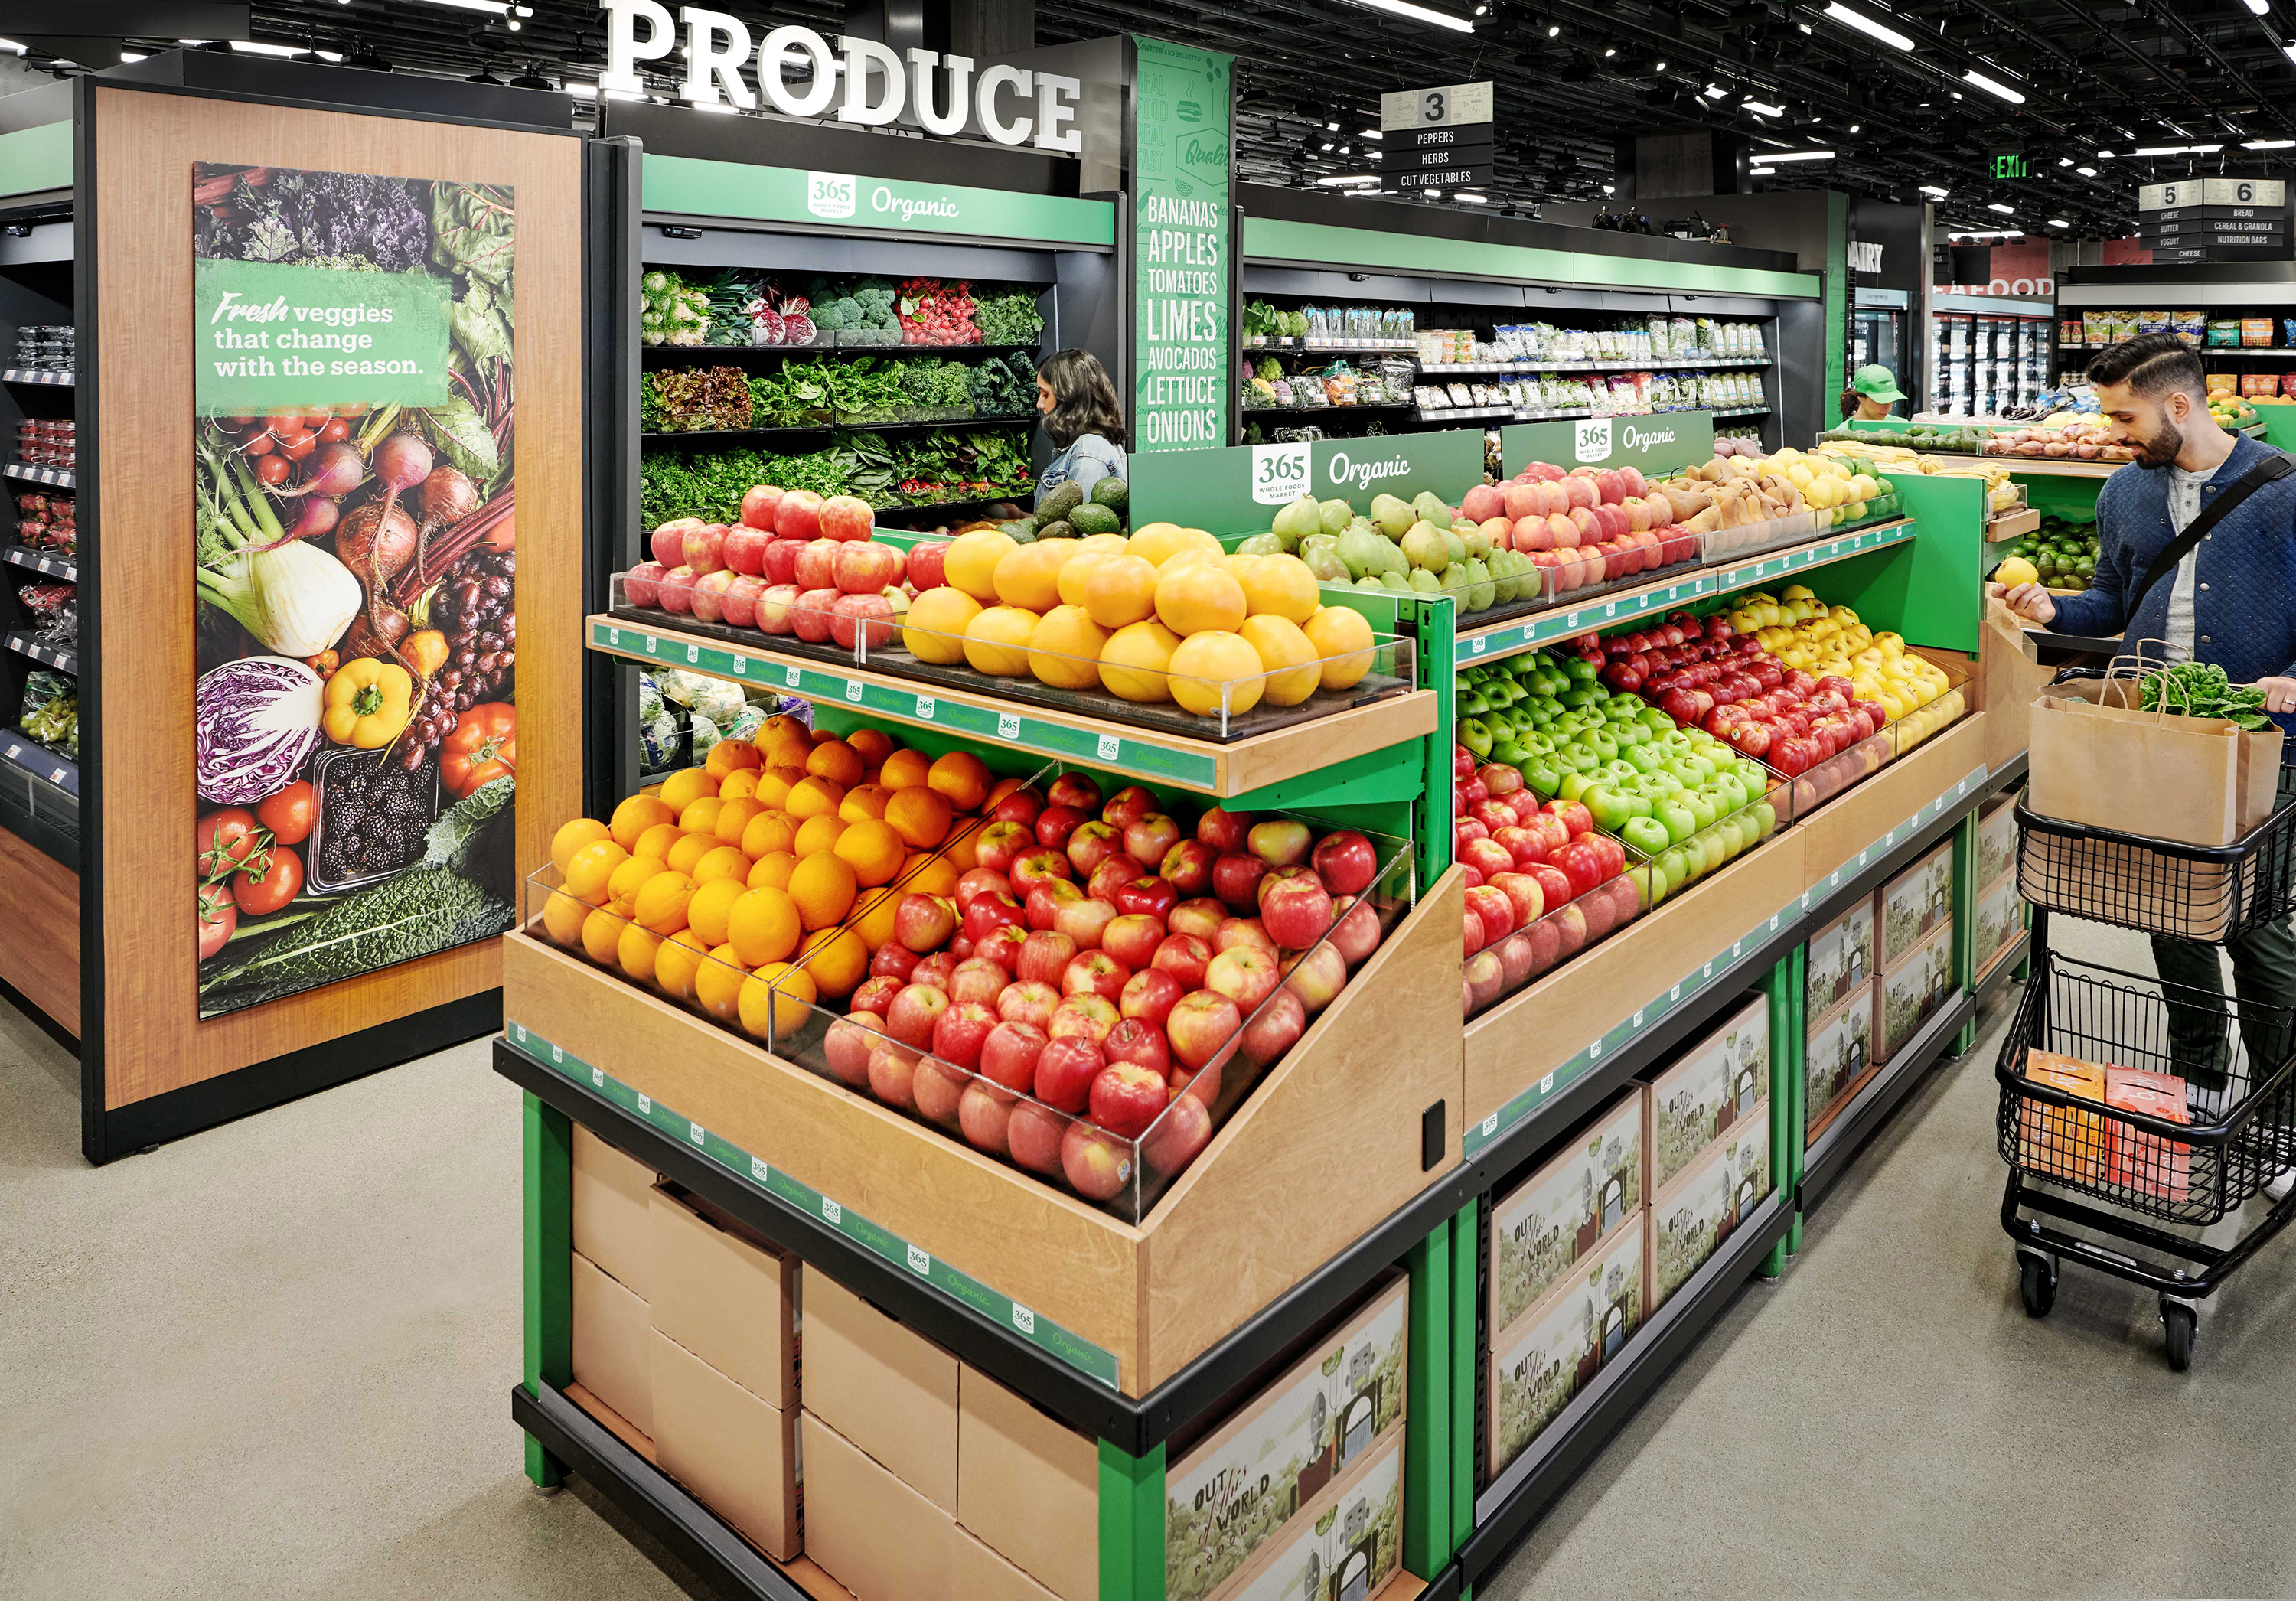 This is Amazon's newest grocery store concept